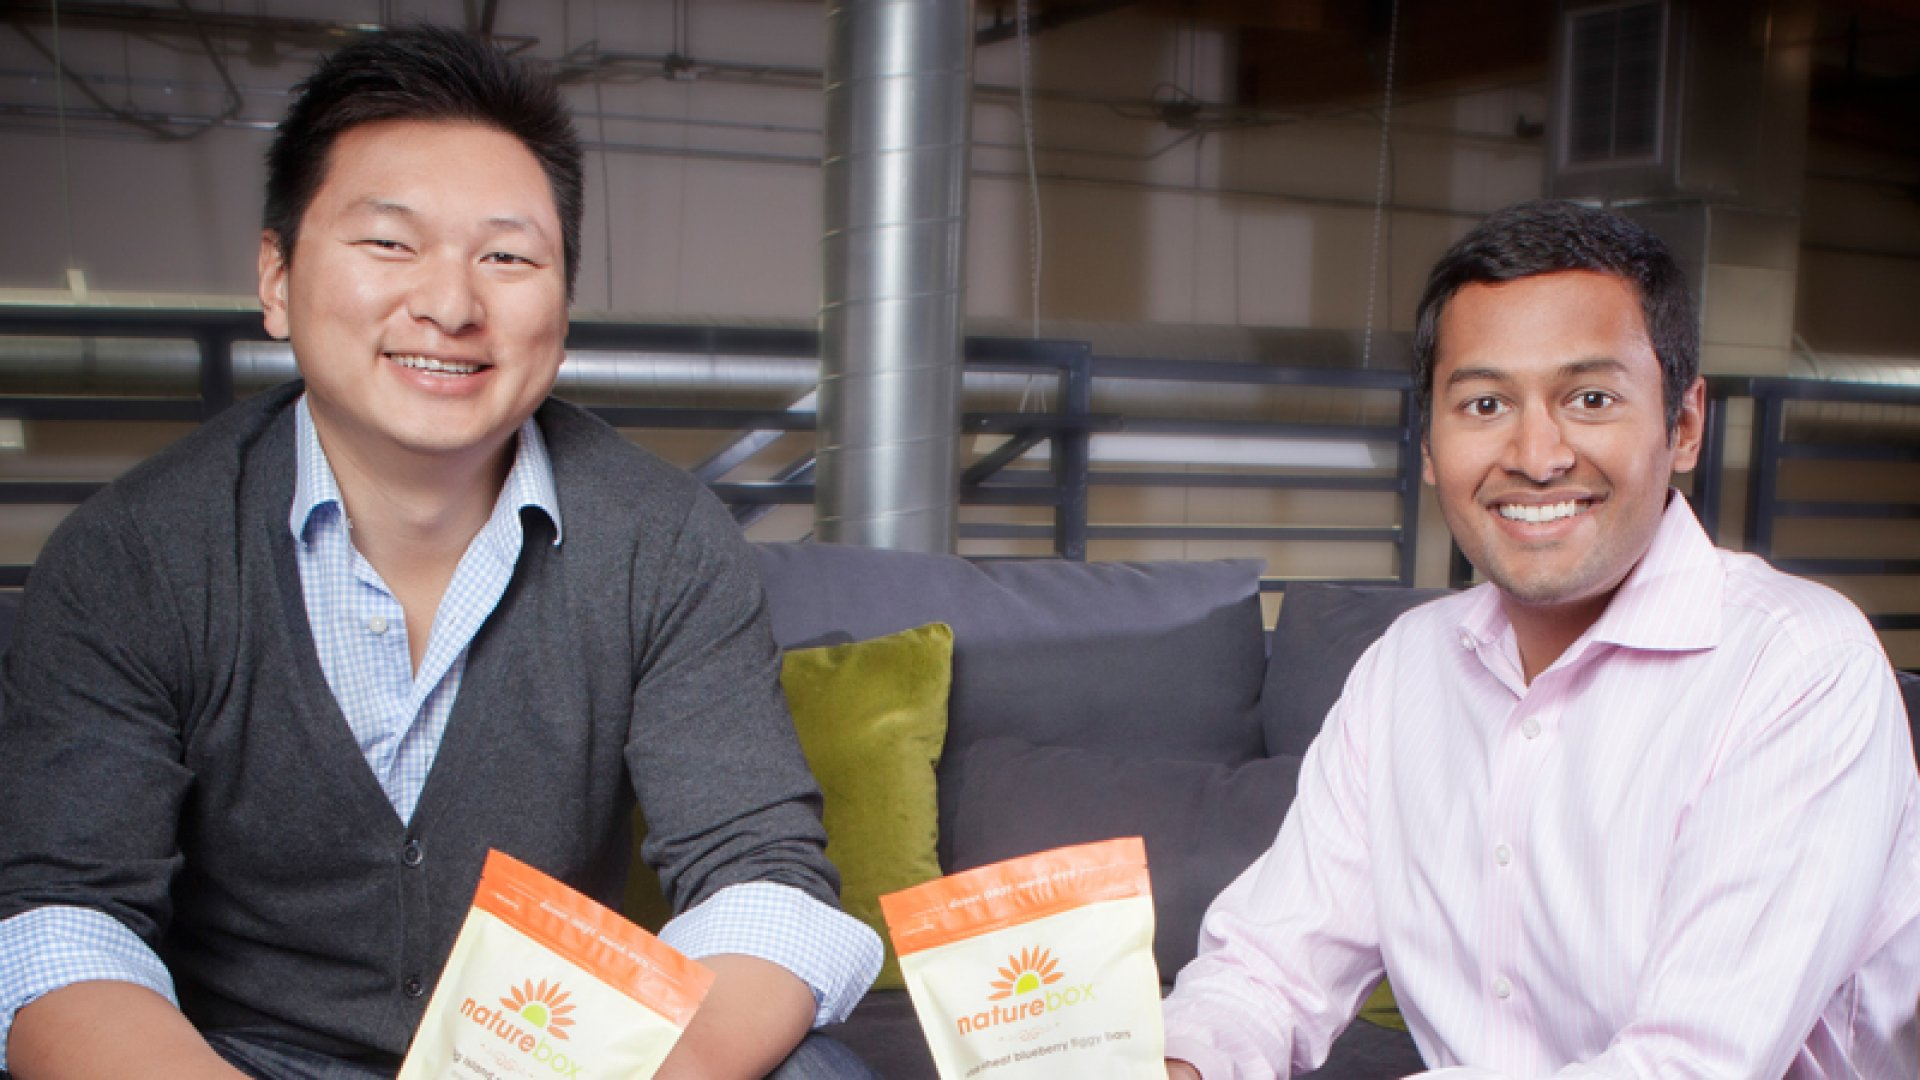 Ken Chen and Gautam Gupta are the co-founders of NatureBox.